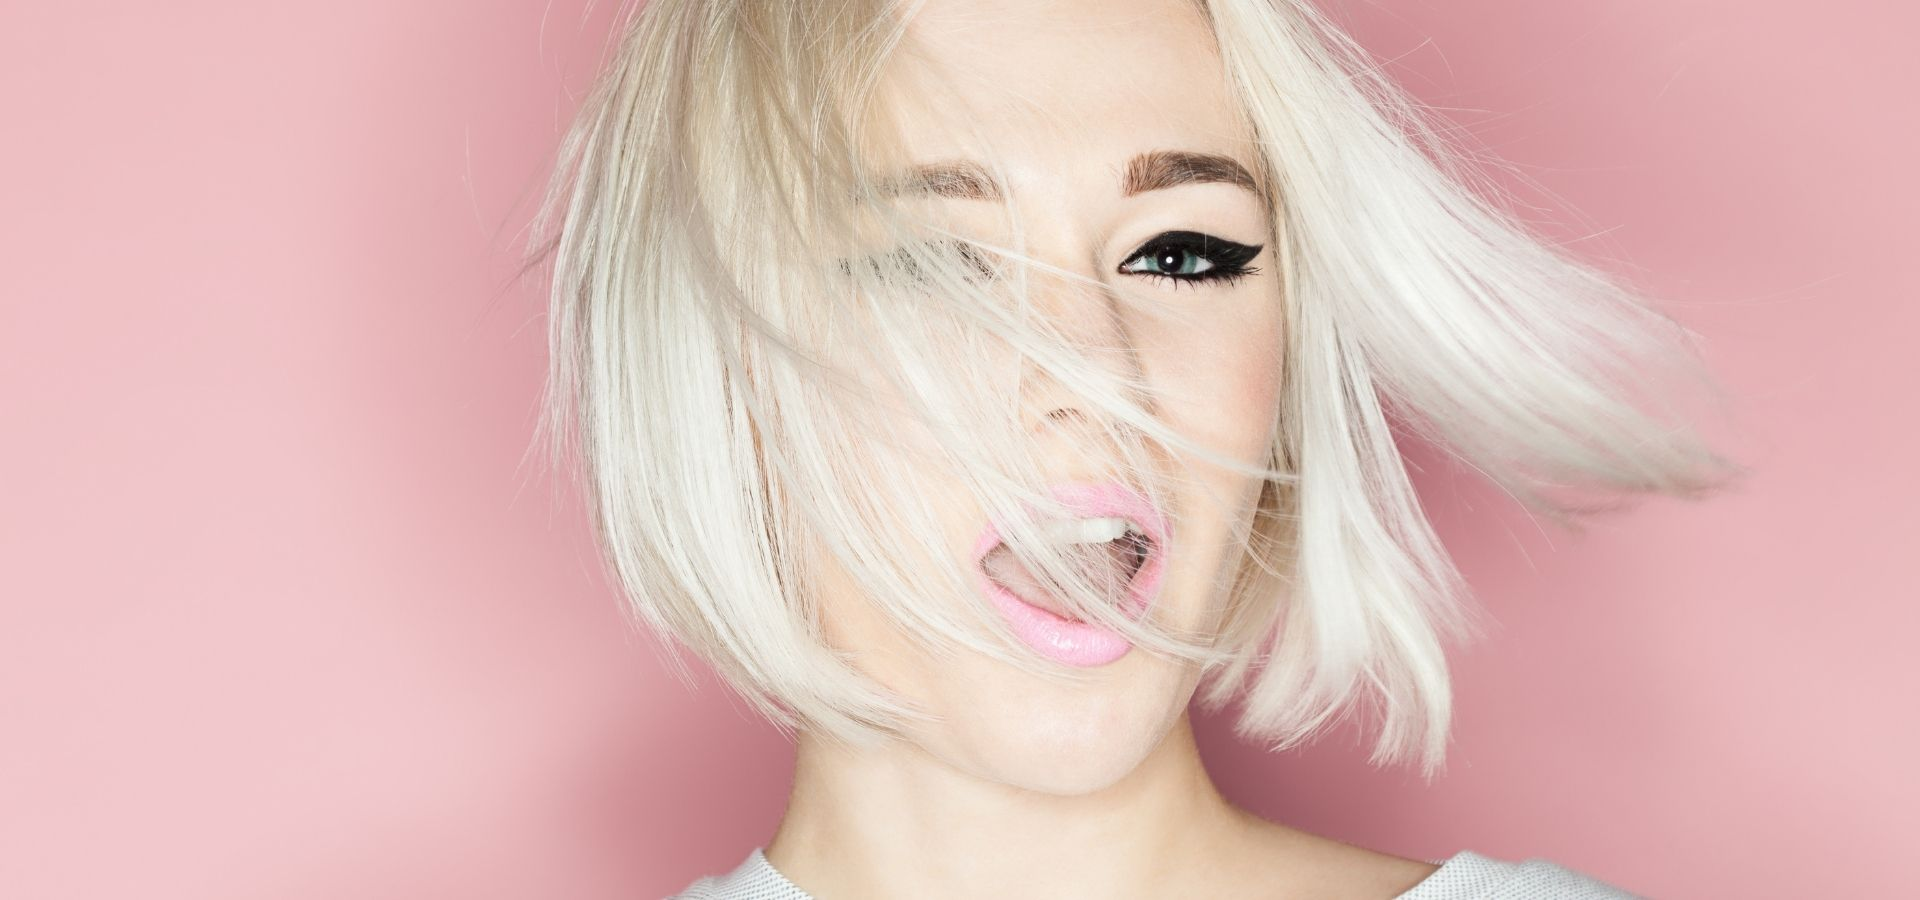 Fashion Blonde with stylish short white blonde hair infront of pink background